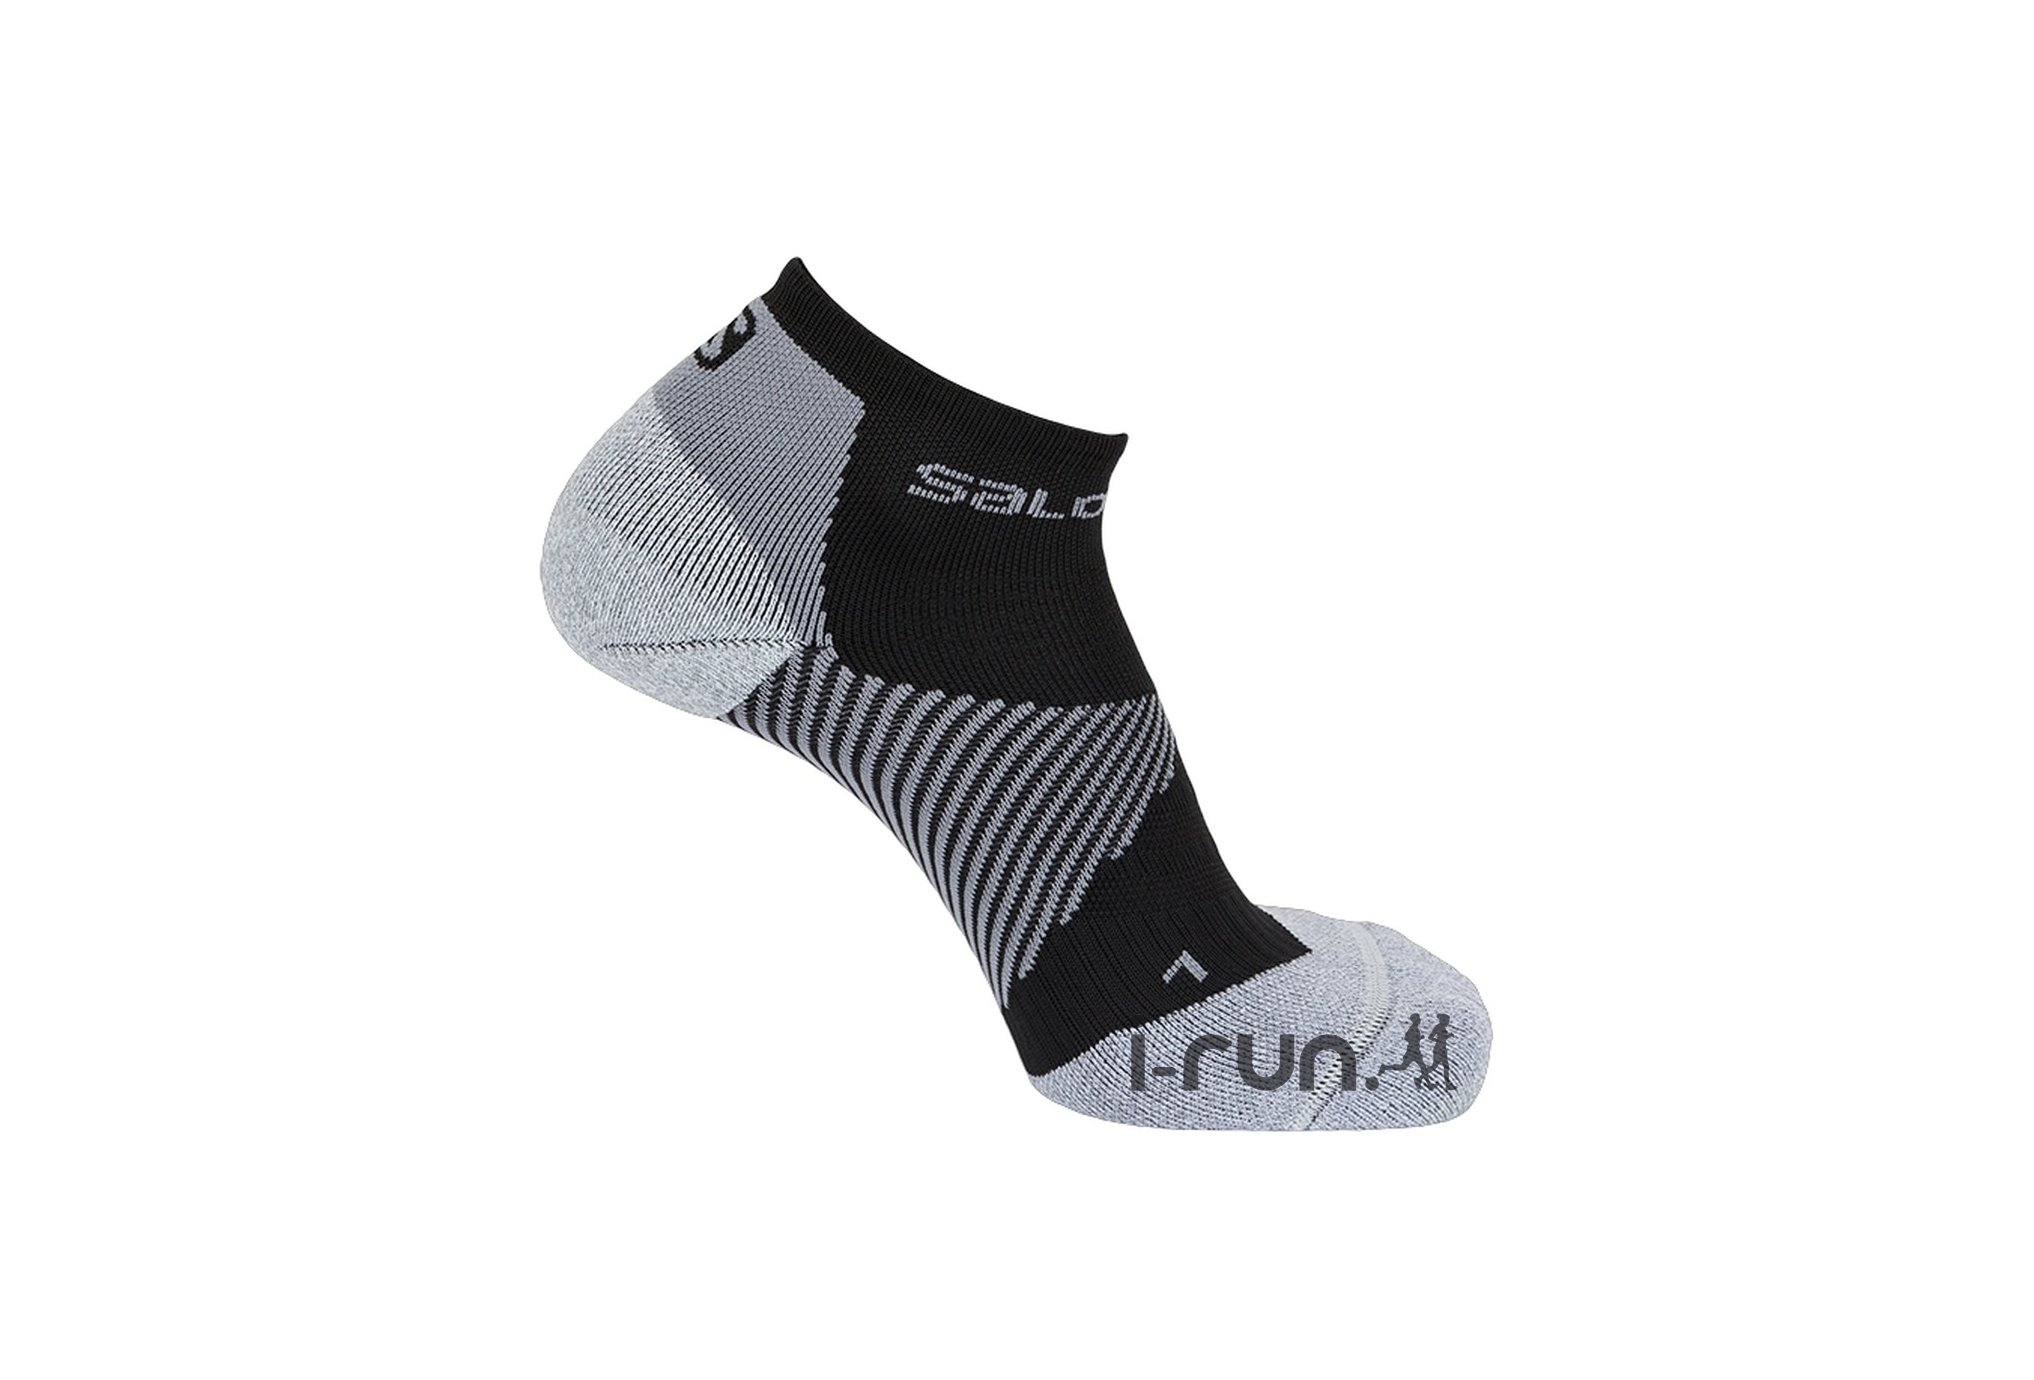 Salomon Chaussettes Speed Support Chaussettes